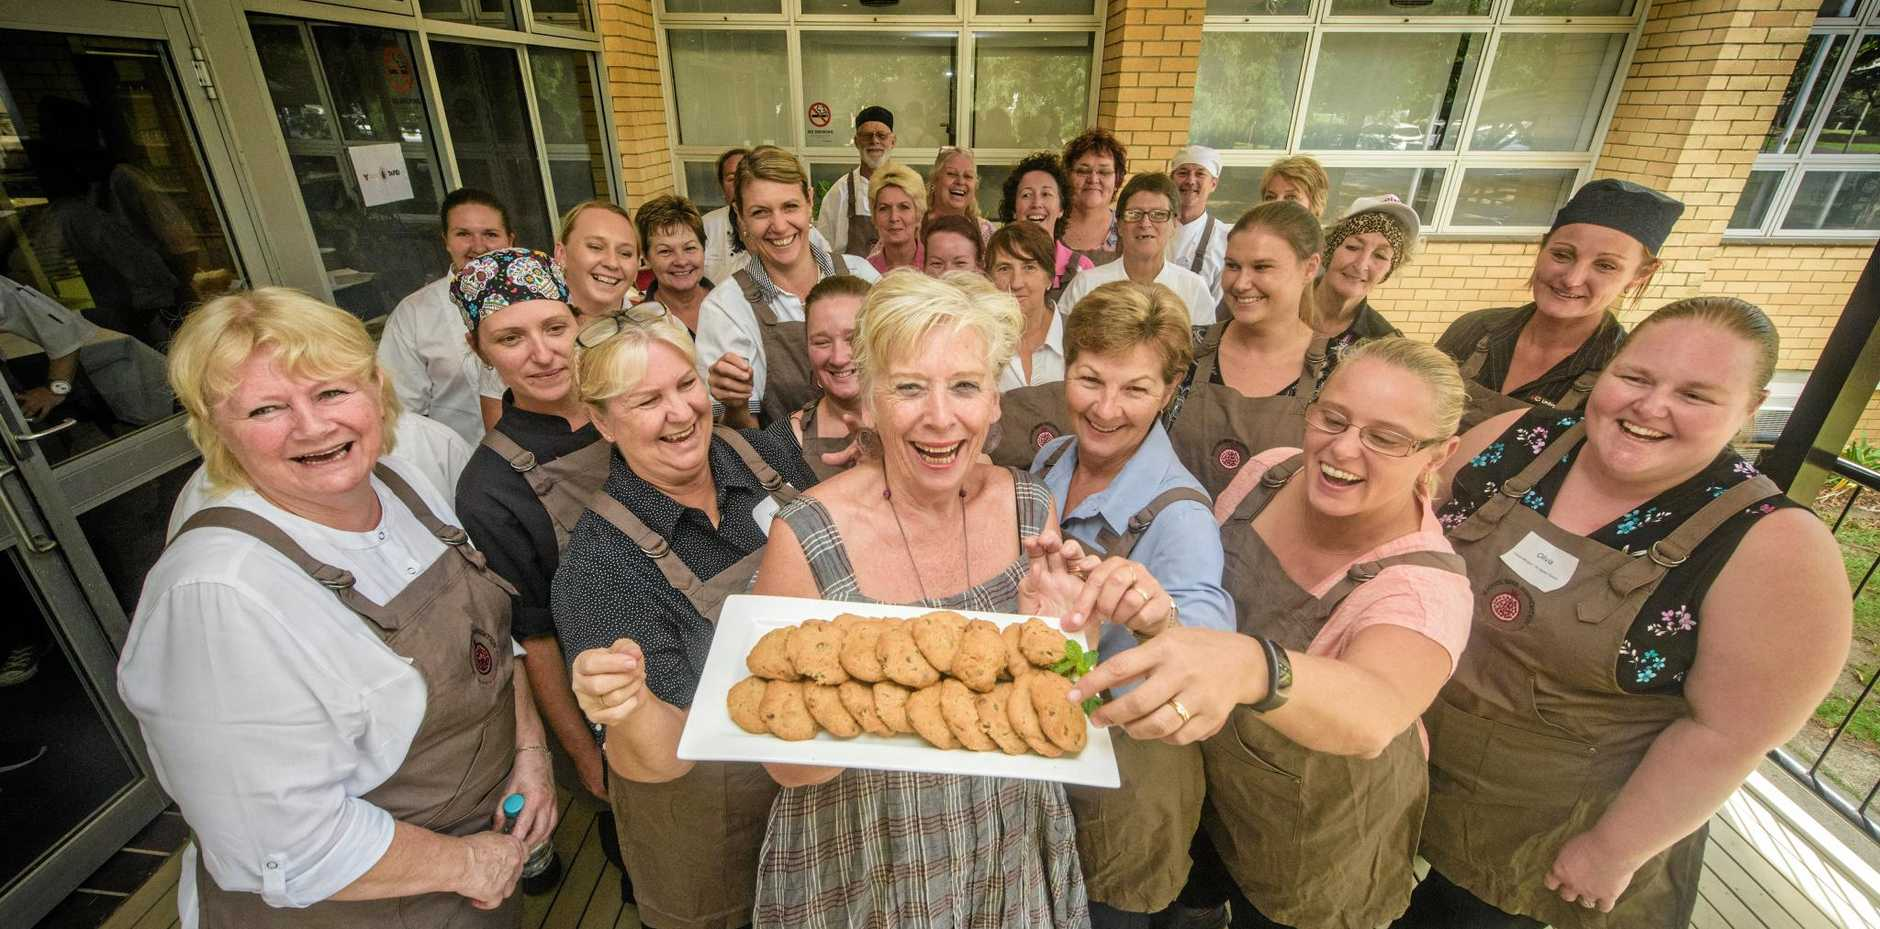 Maggie Beer is surrounded by food workers from local aged care homes as part of her Maggie Beer Foundation series of talks at the Grafton campus of TAFE.